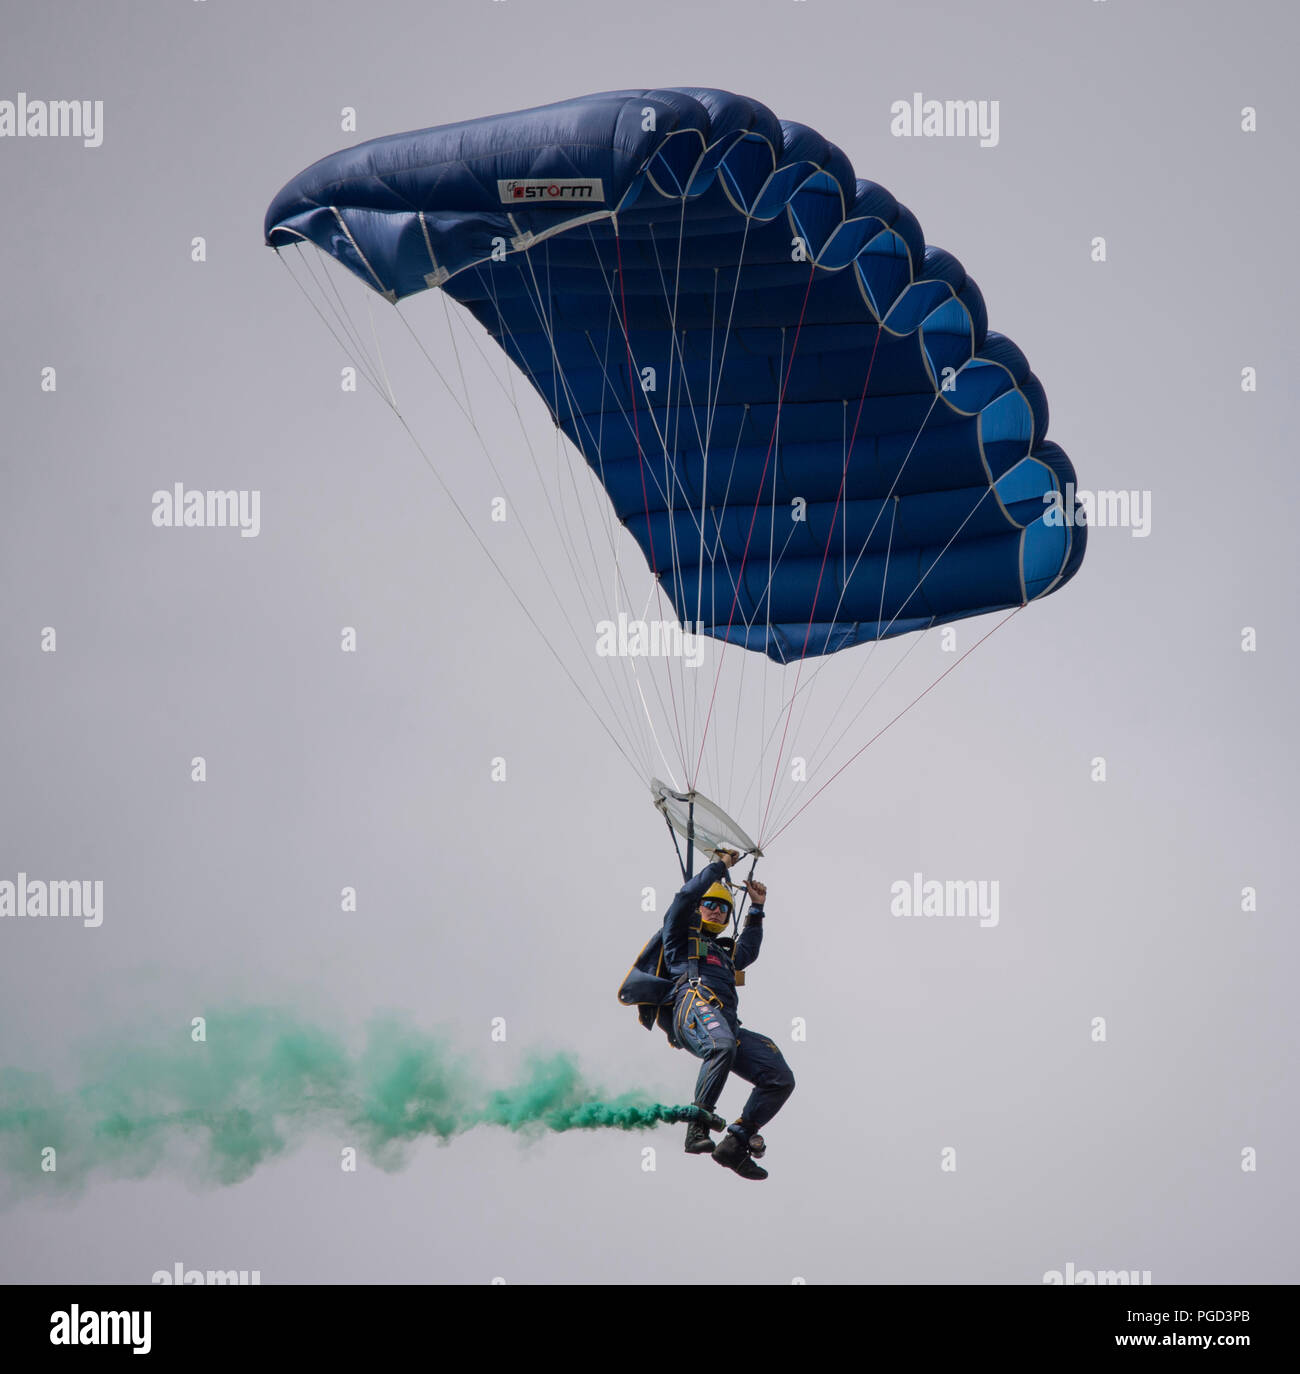 Parachute Regiments Stock Photos & Parachute Regiments Stock